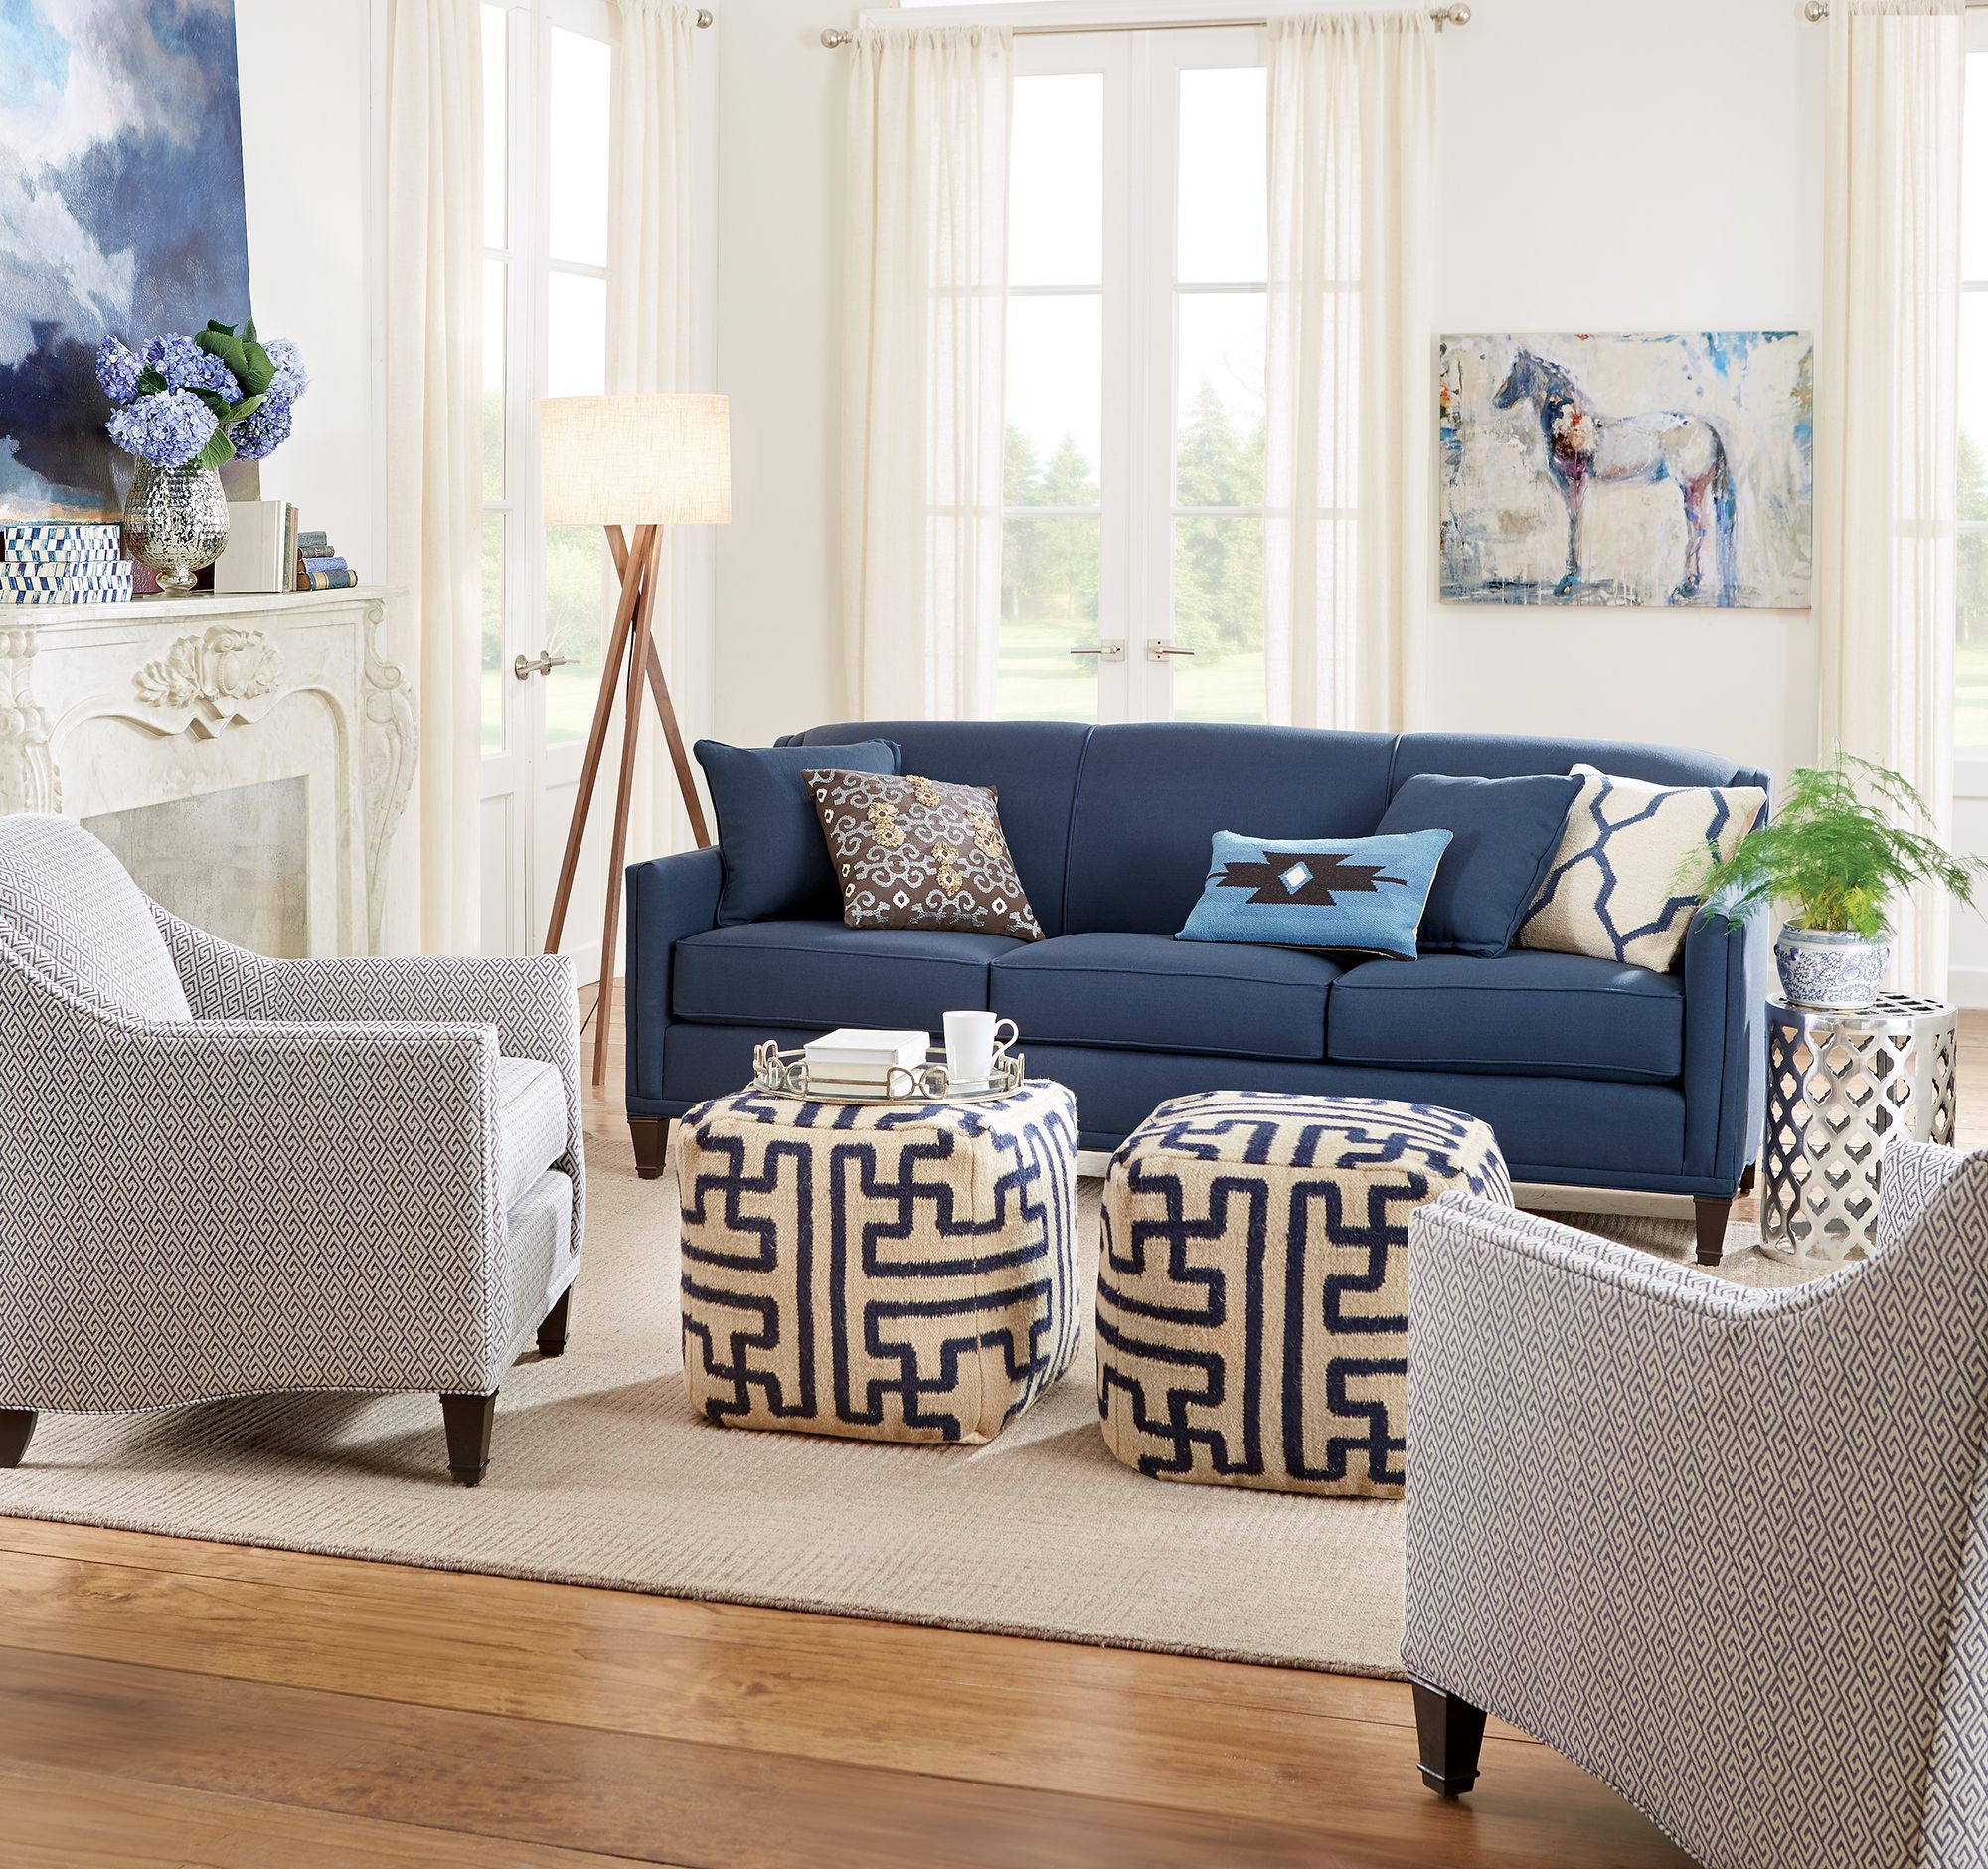 Beautiful In Blue A Stunning Blue Sofa Surrounded By Neutrals